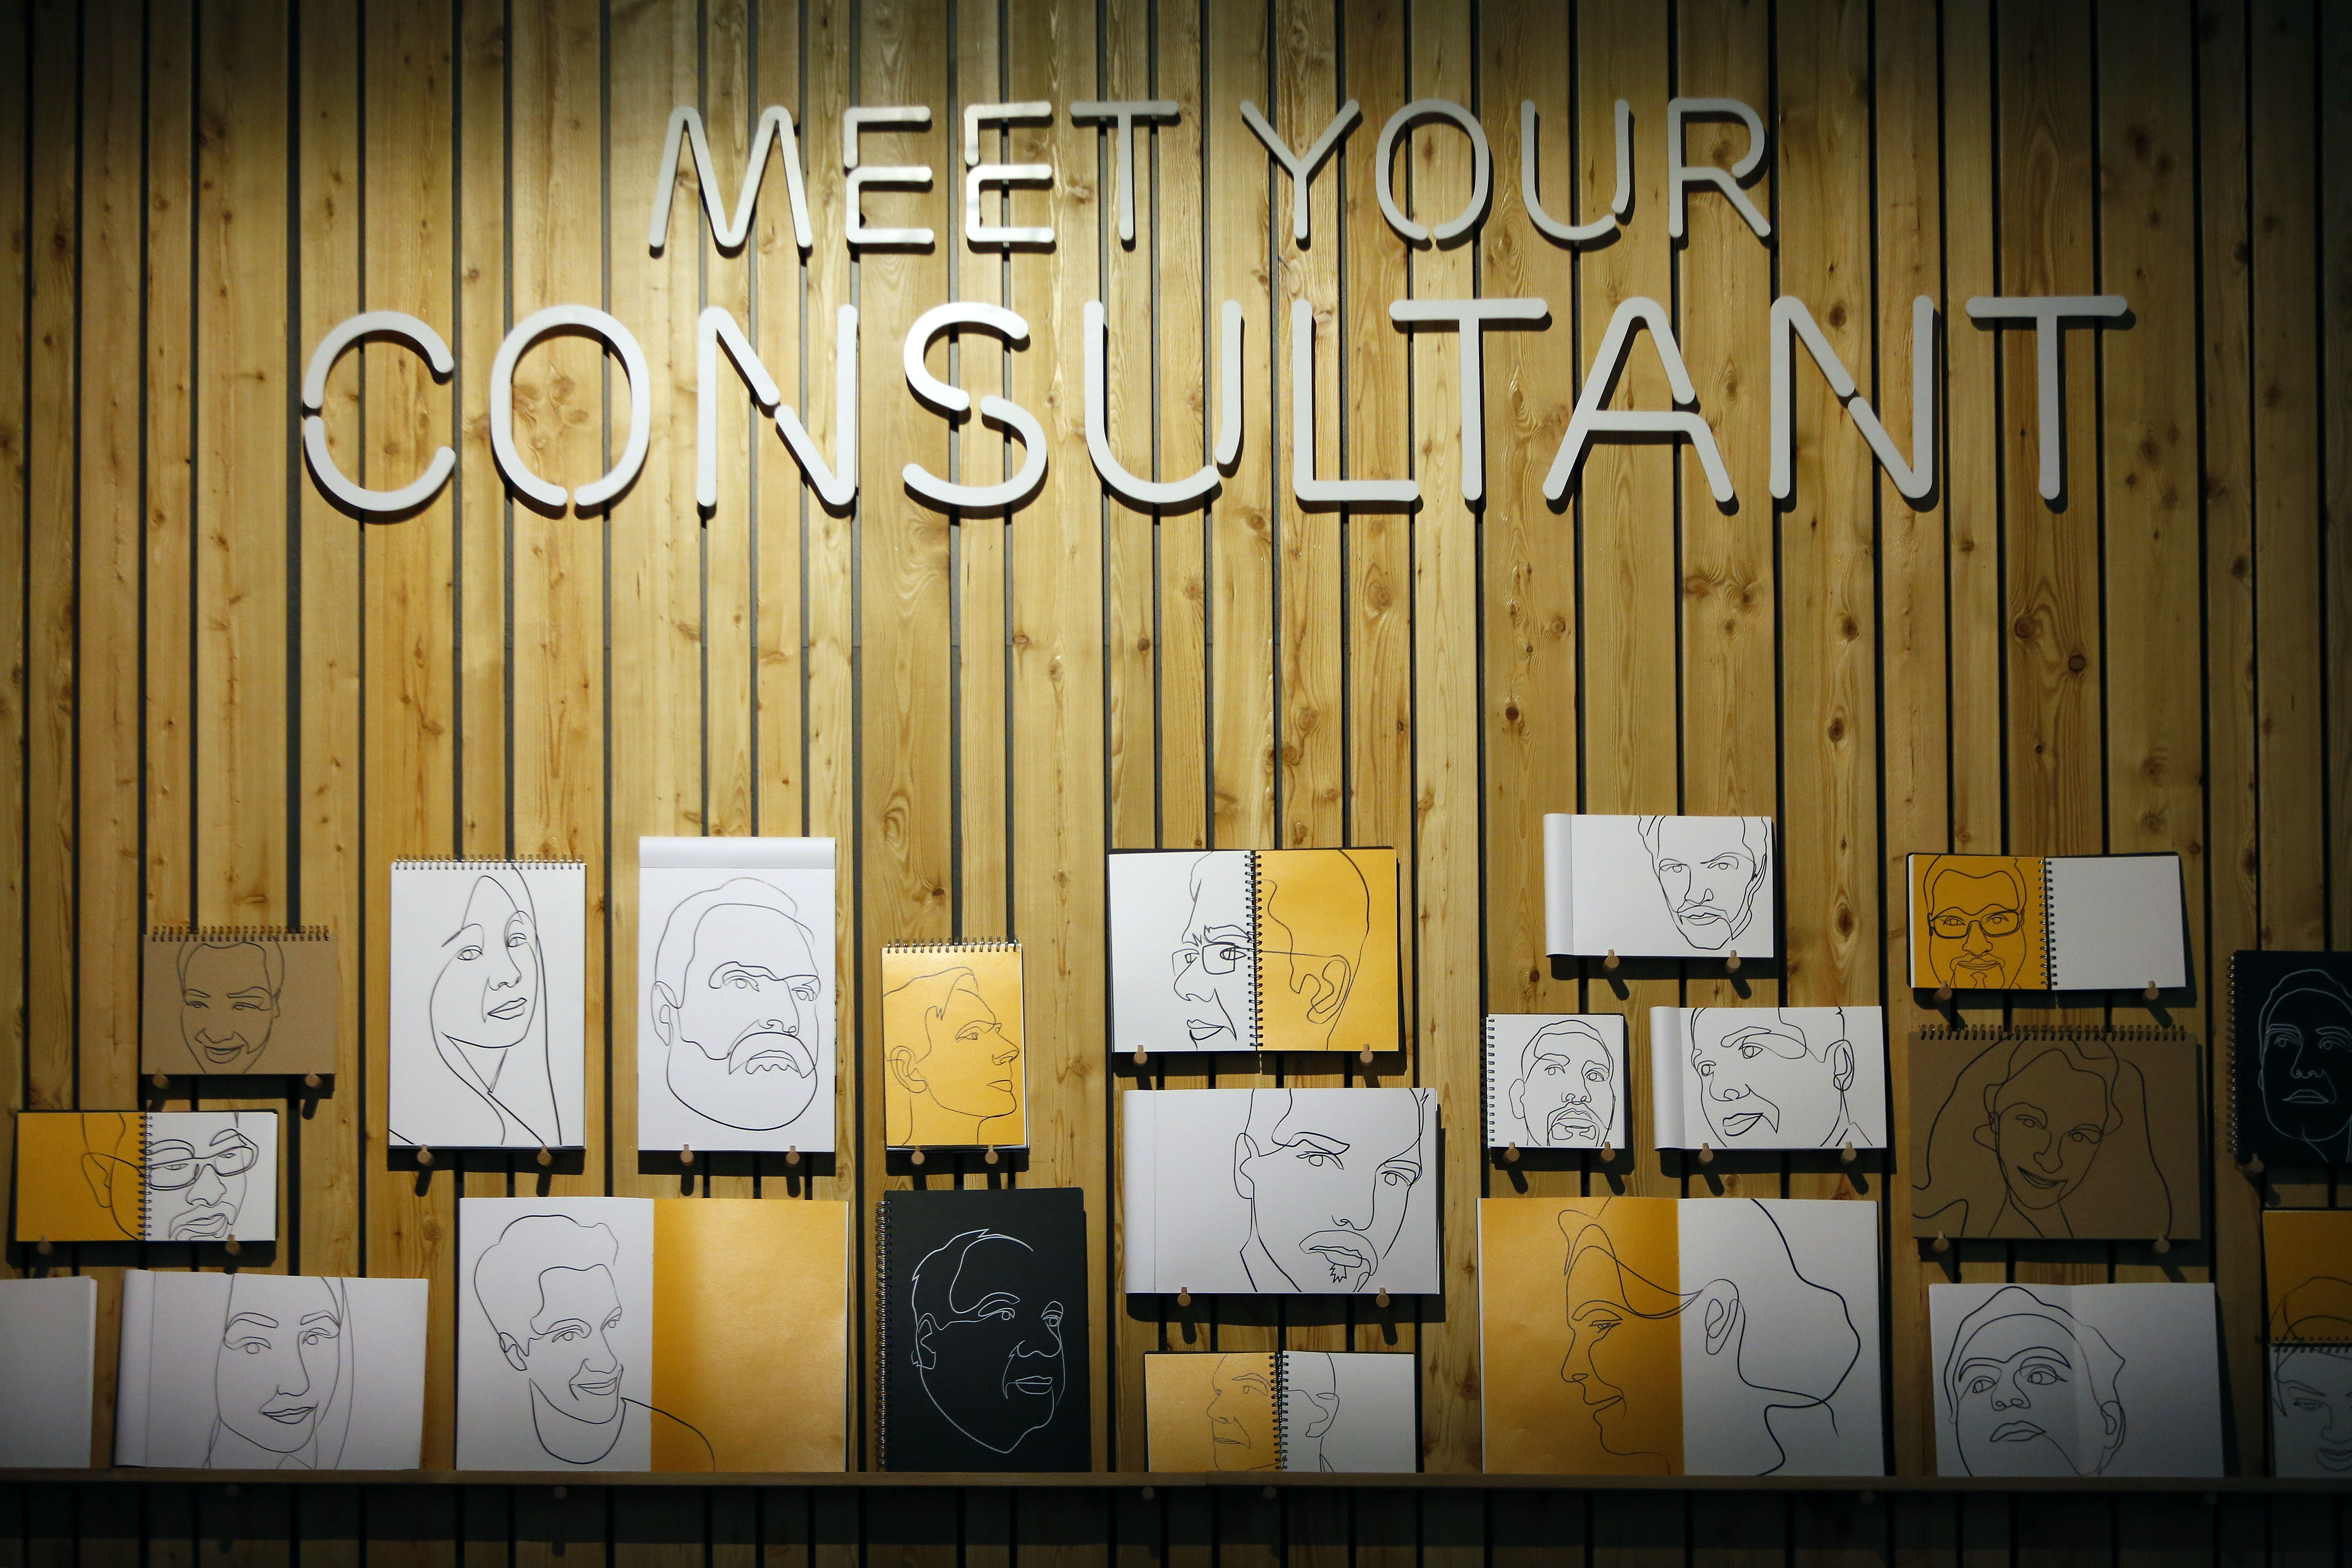 Meet your Consultant